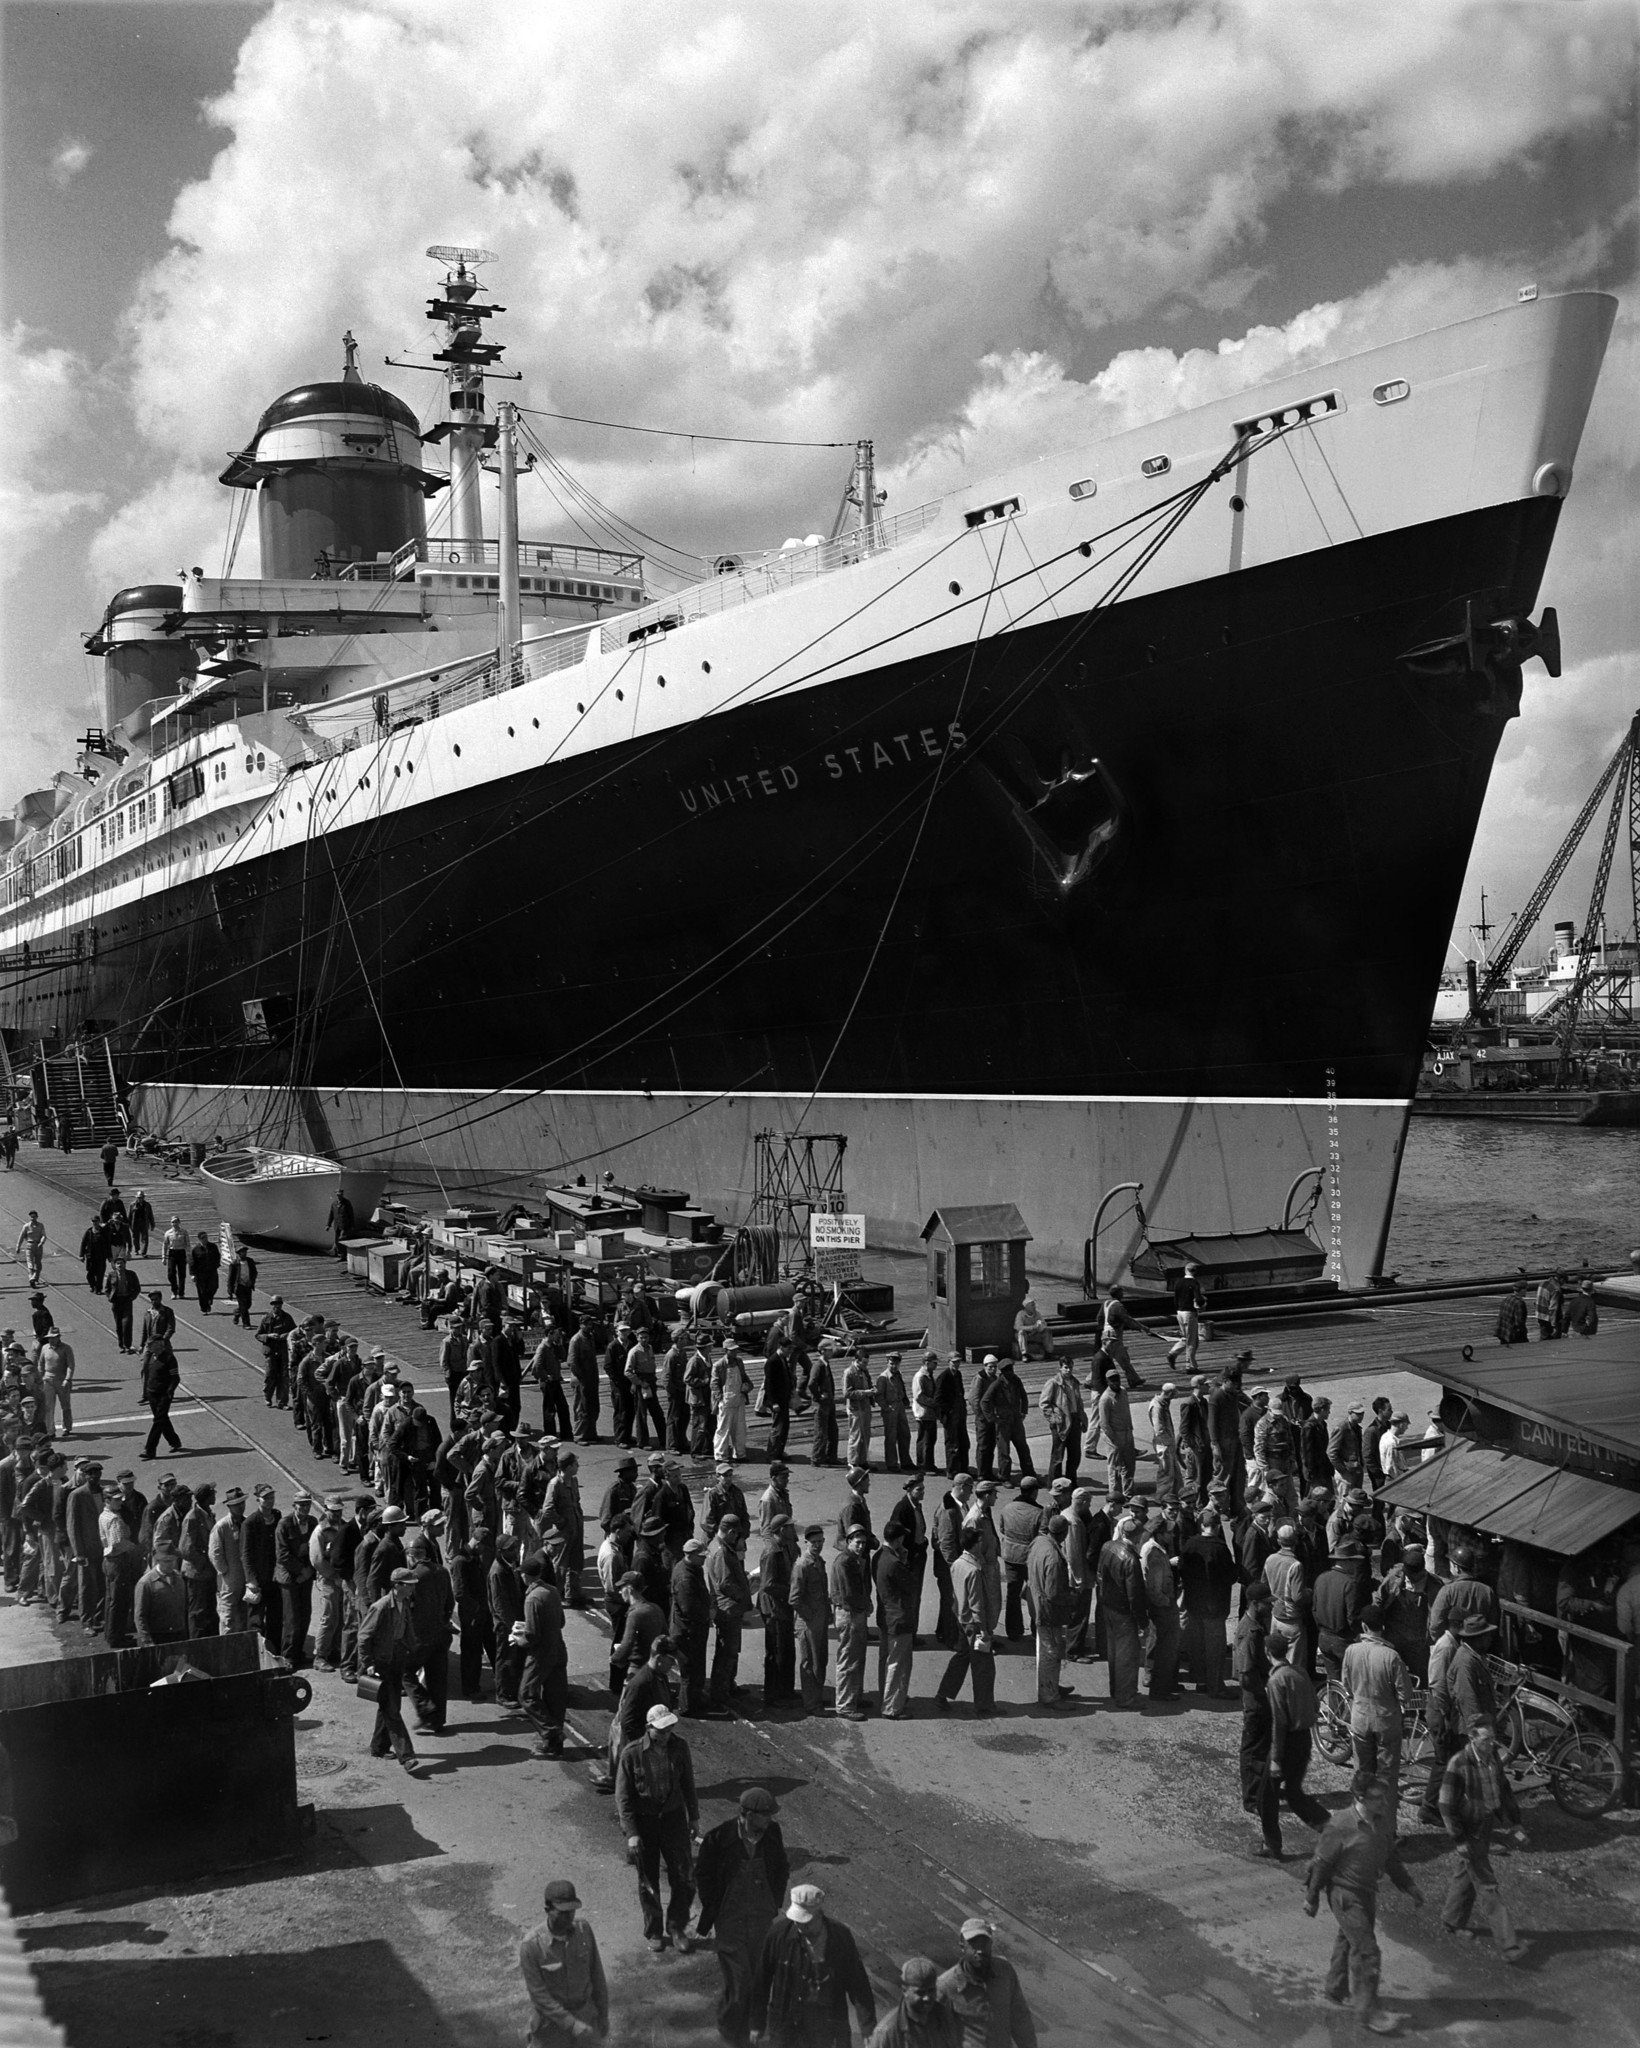 The construction of SS United States at Newport News, Virginia